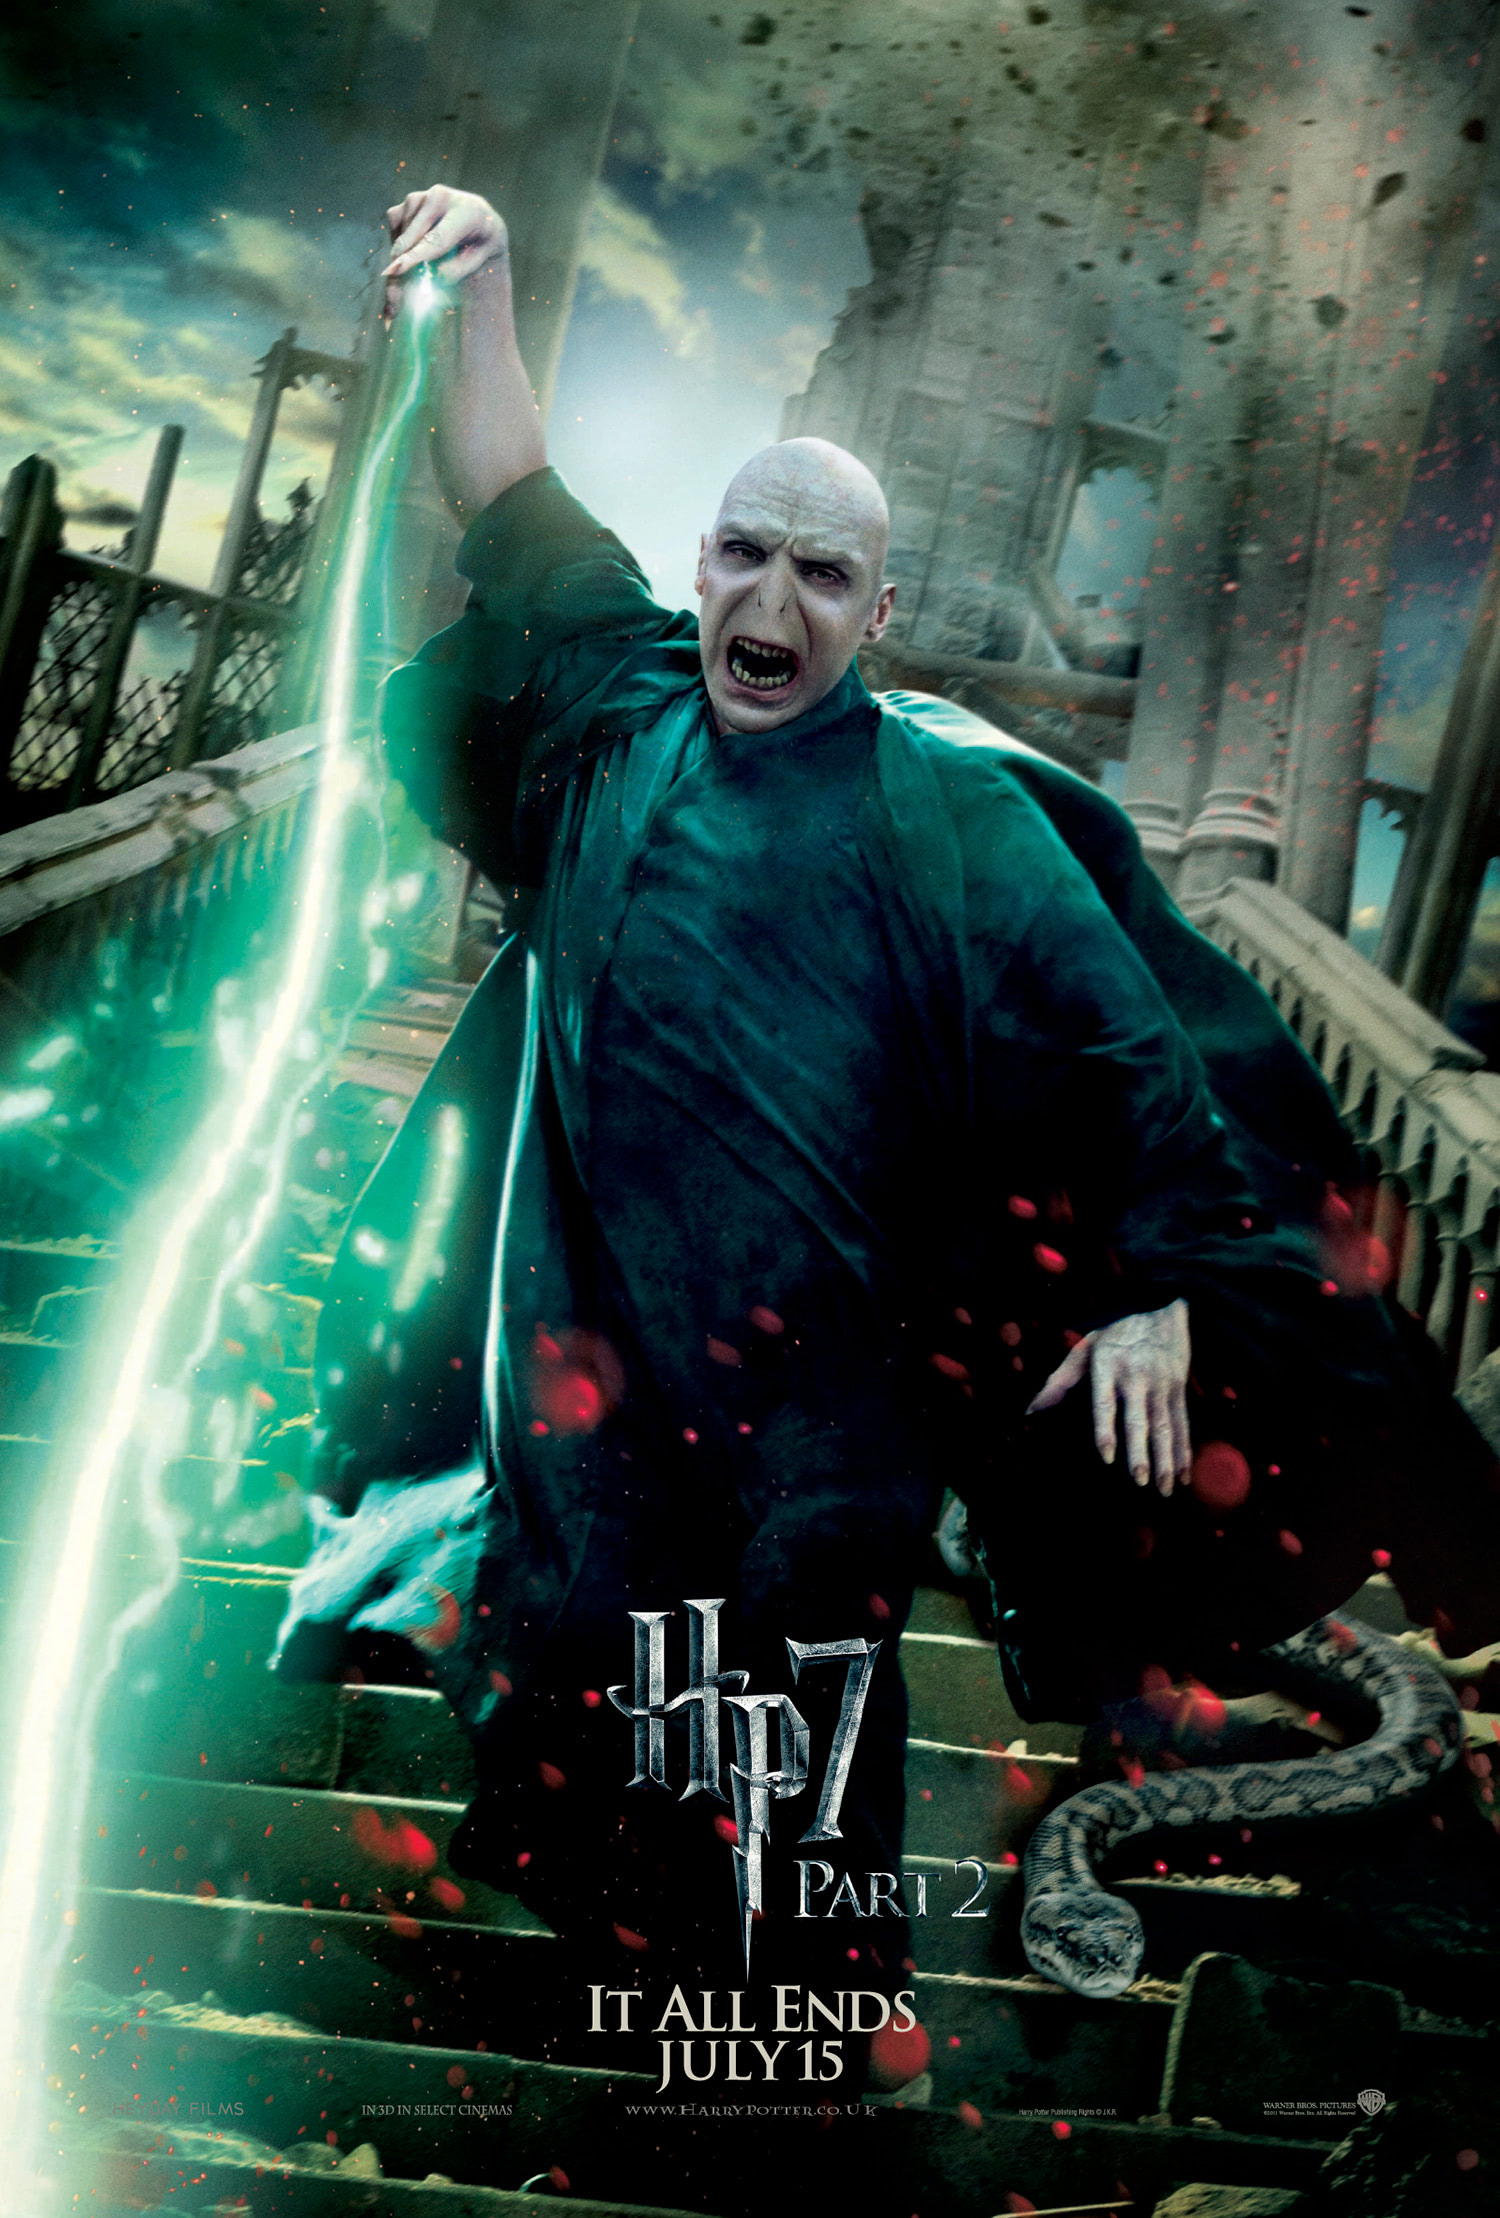 'Deathly Hallows: Part 2' Voldemort poster